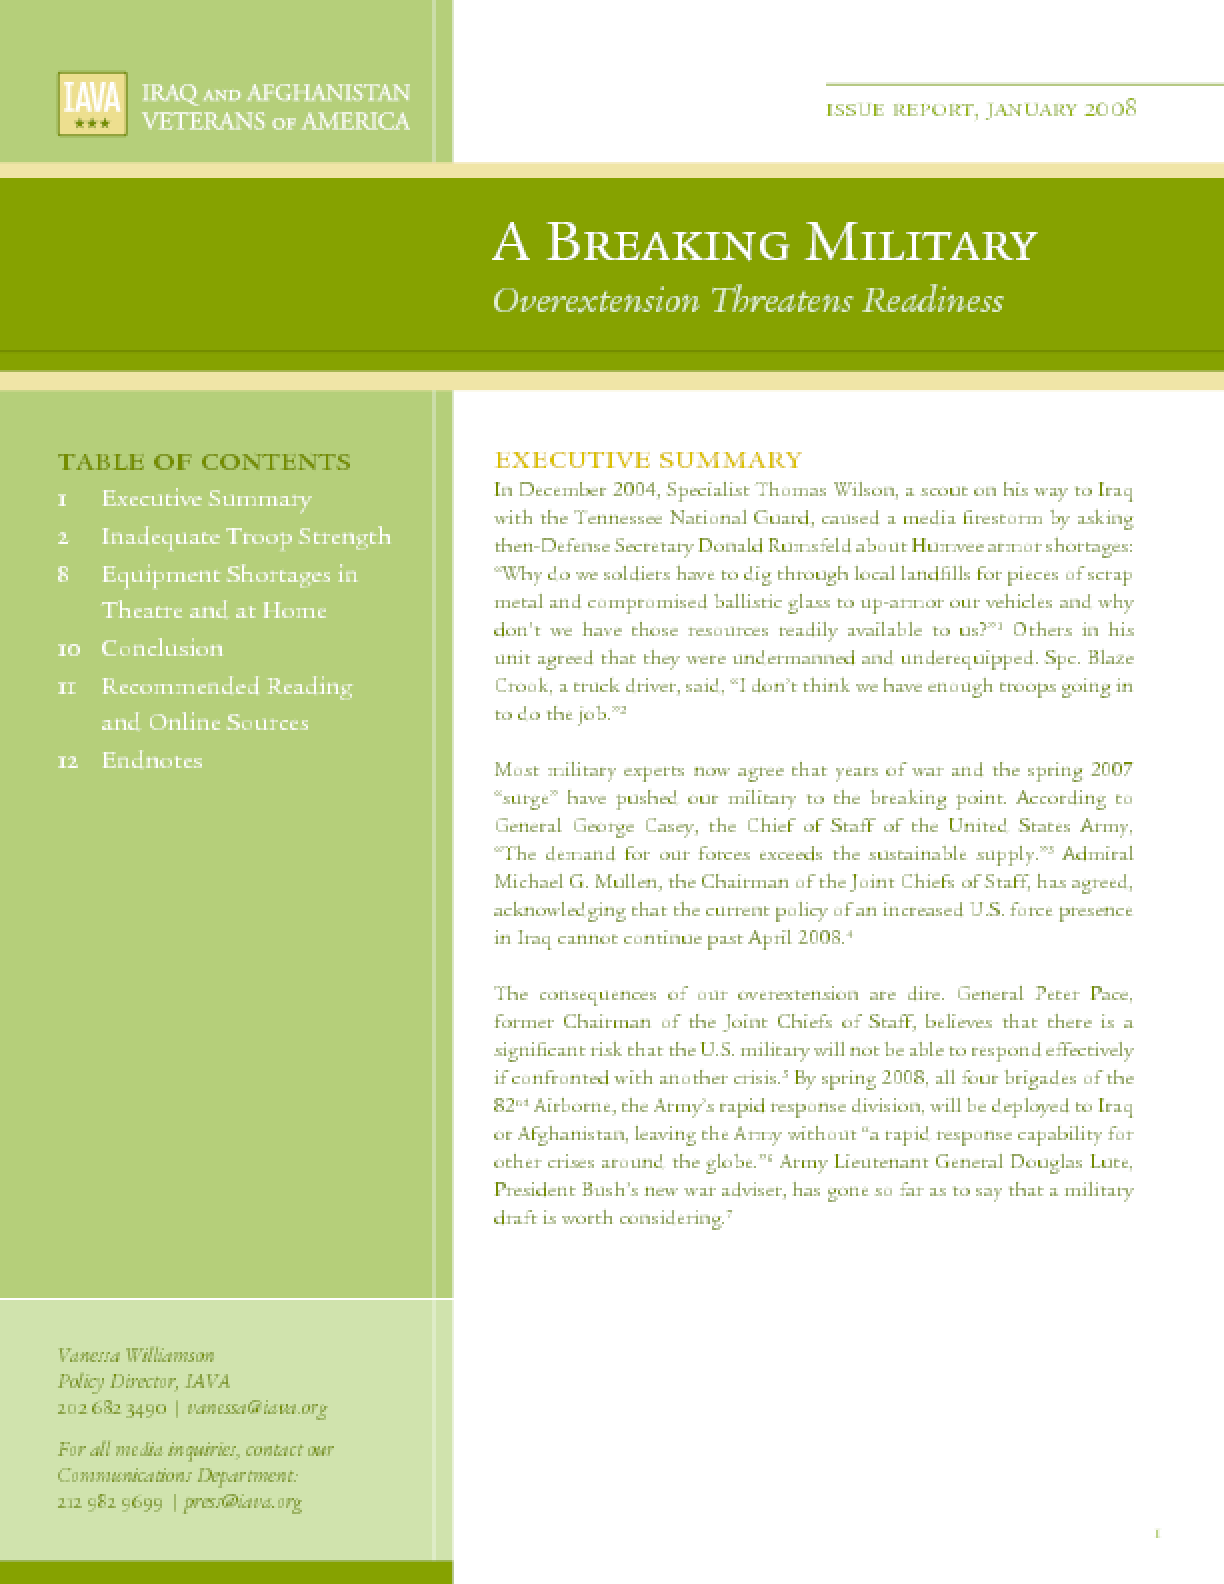 A Breaking Military: Overextension Threatens Readiness